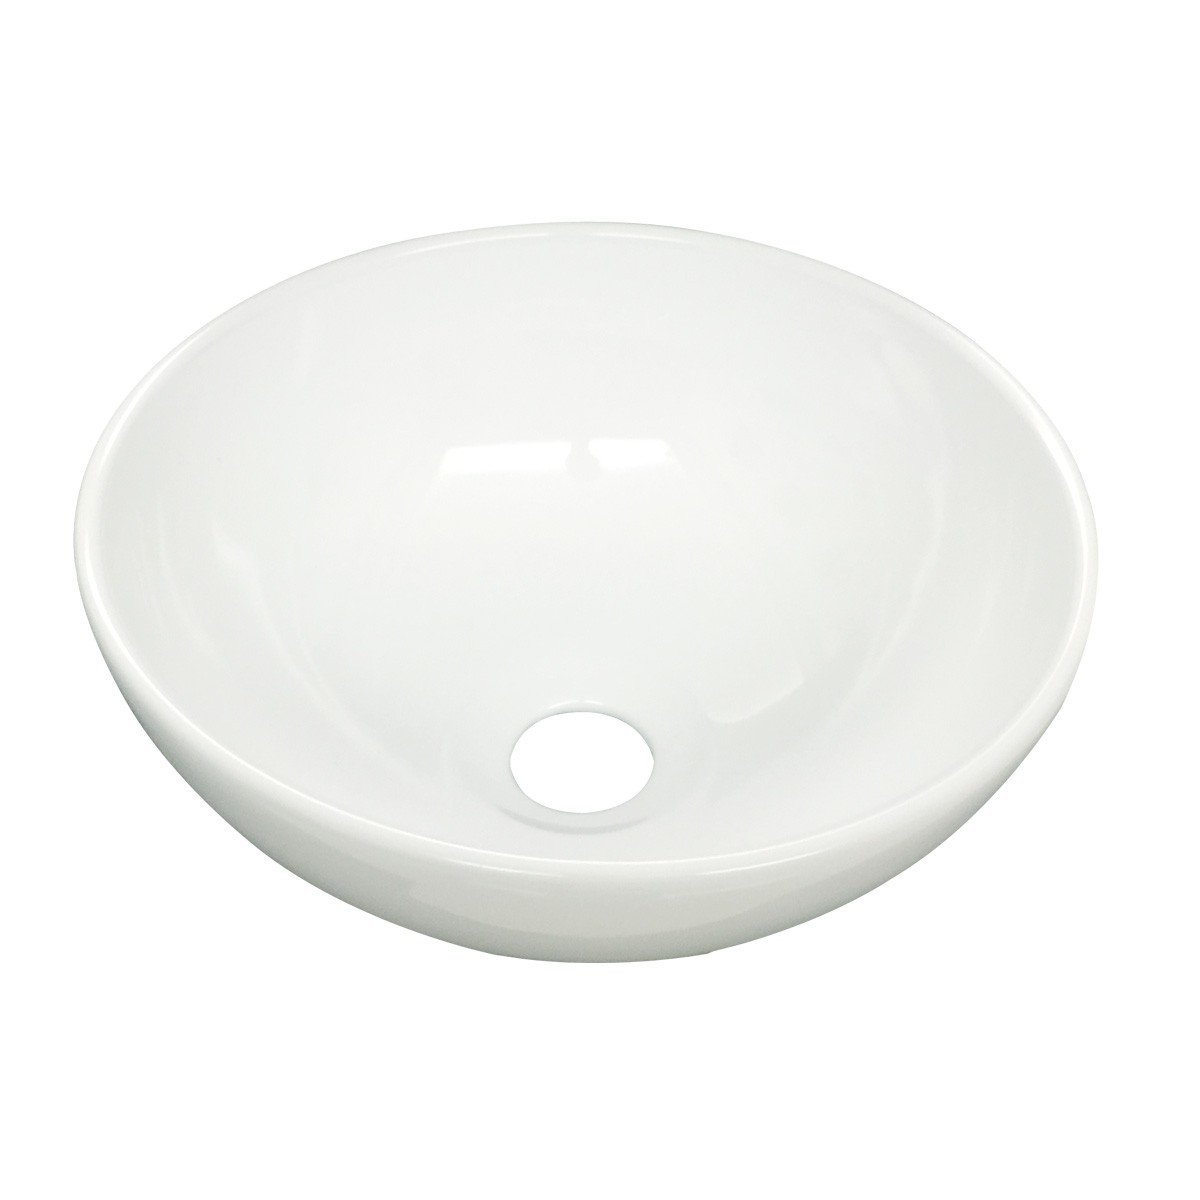 Small Mini Round Above Counter Vessel Bathroom Sink White Porcelain With Grade A Vitreous China Finish 11.25 Inch Diameter Renovator s Supply